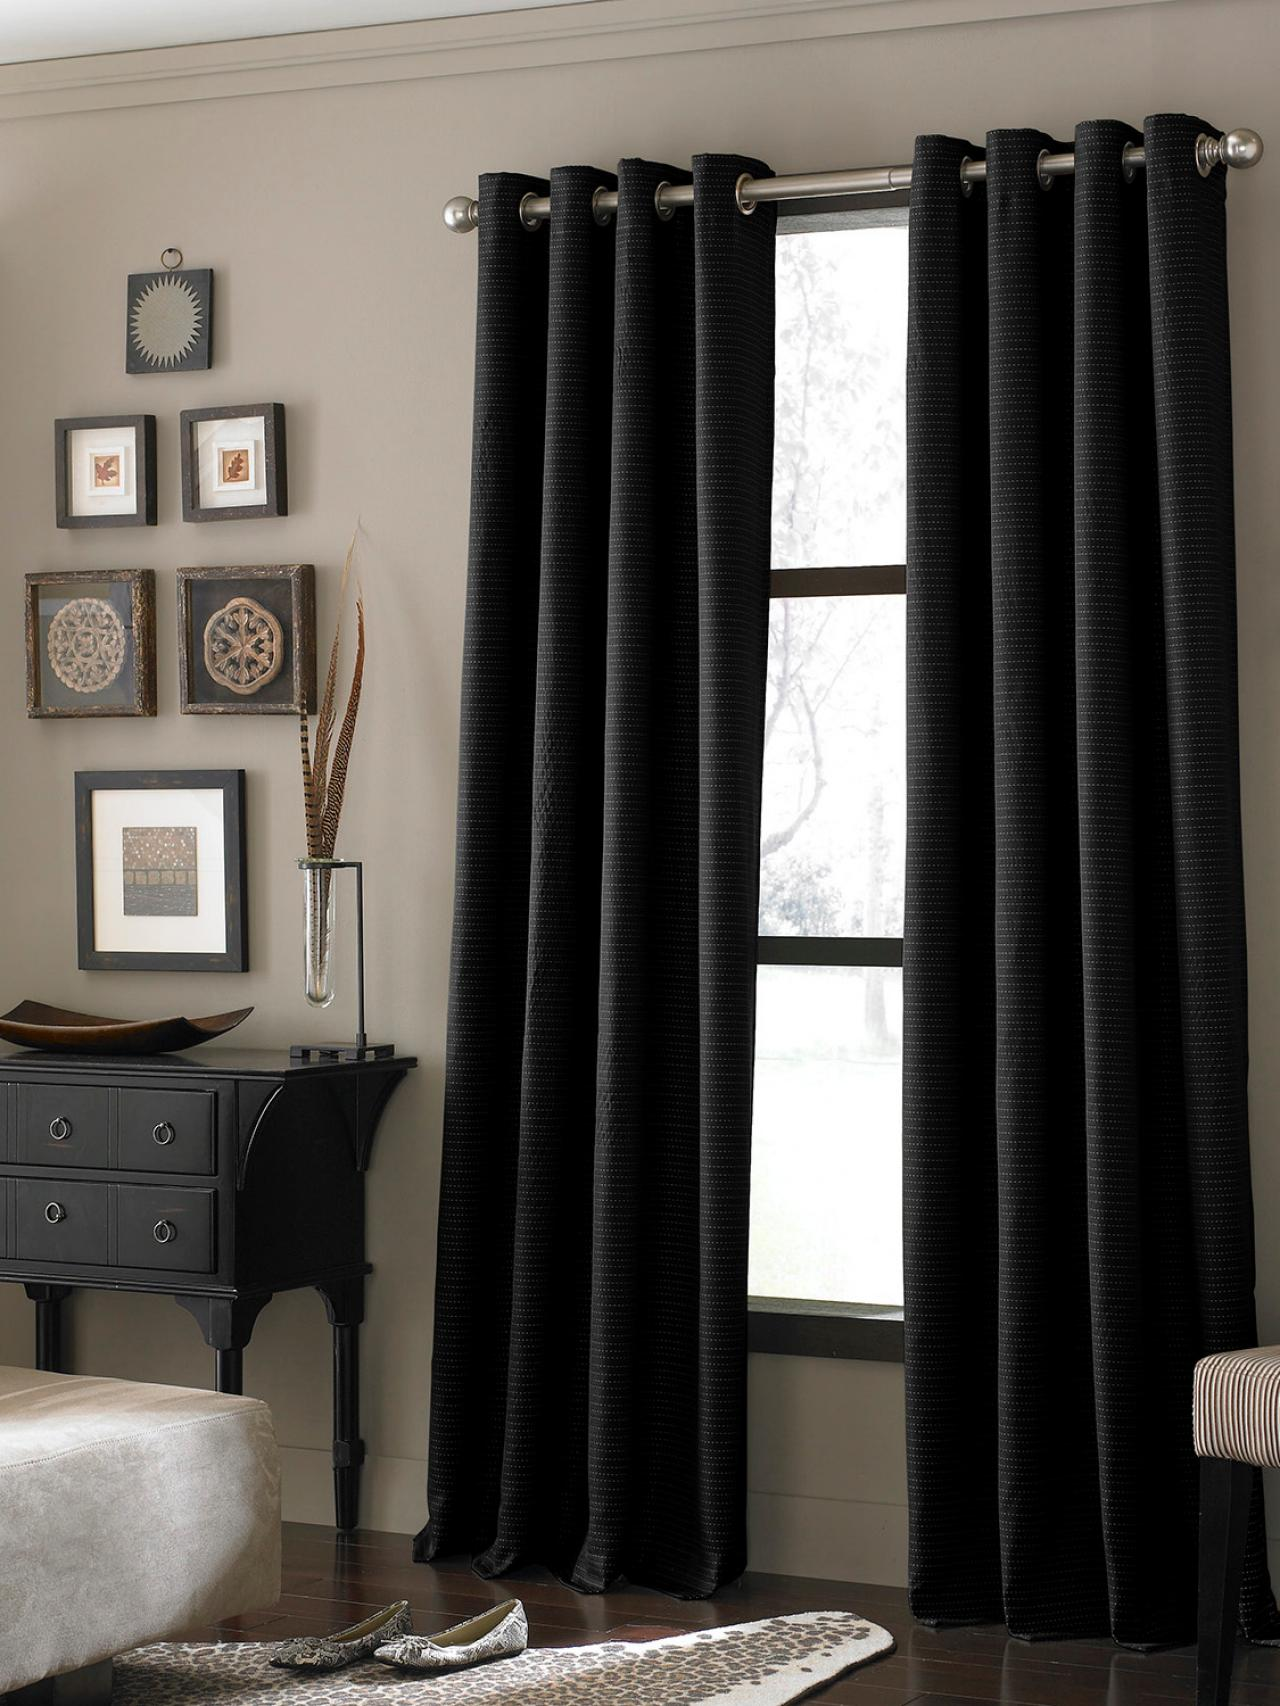 black-textured-curtains : same-curtains-in-every-room - designwebi.com